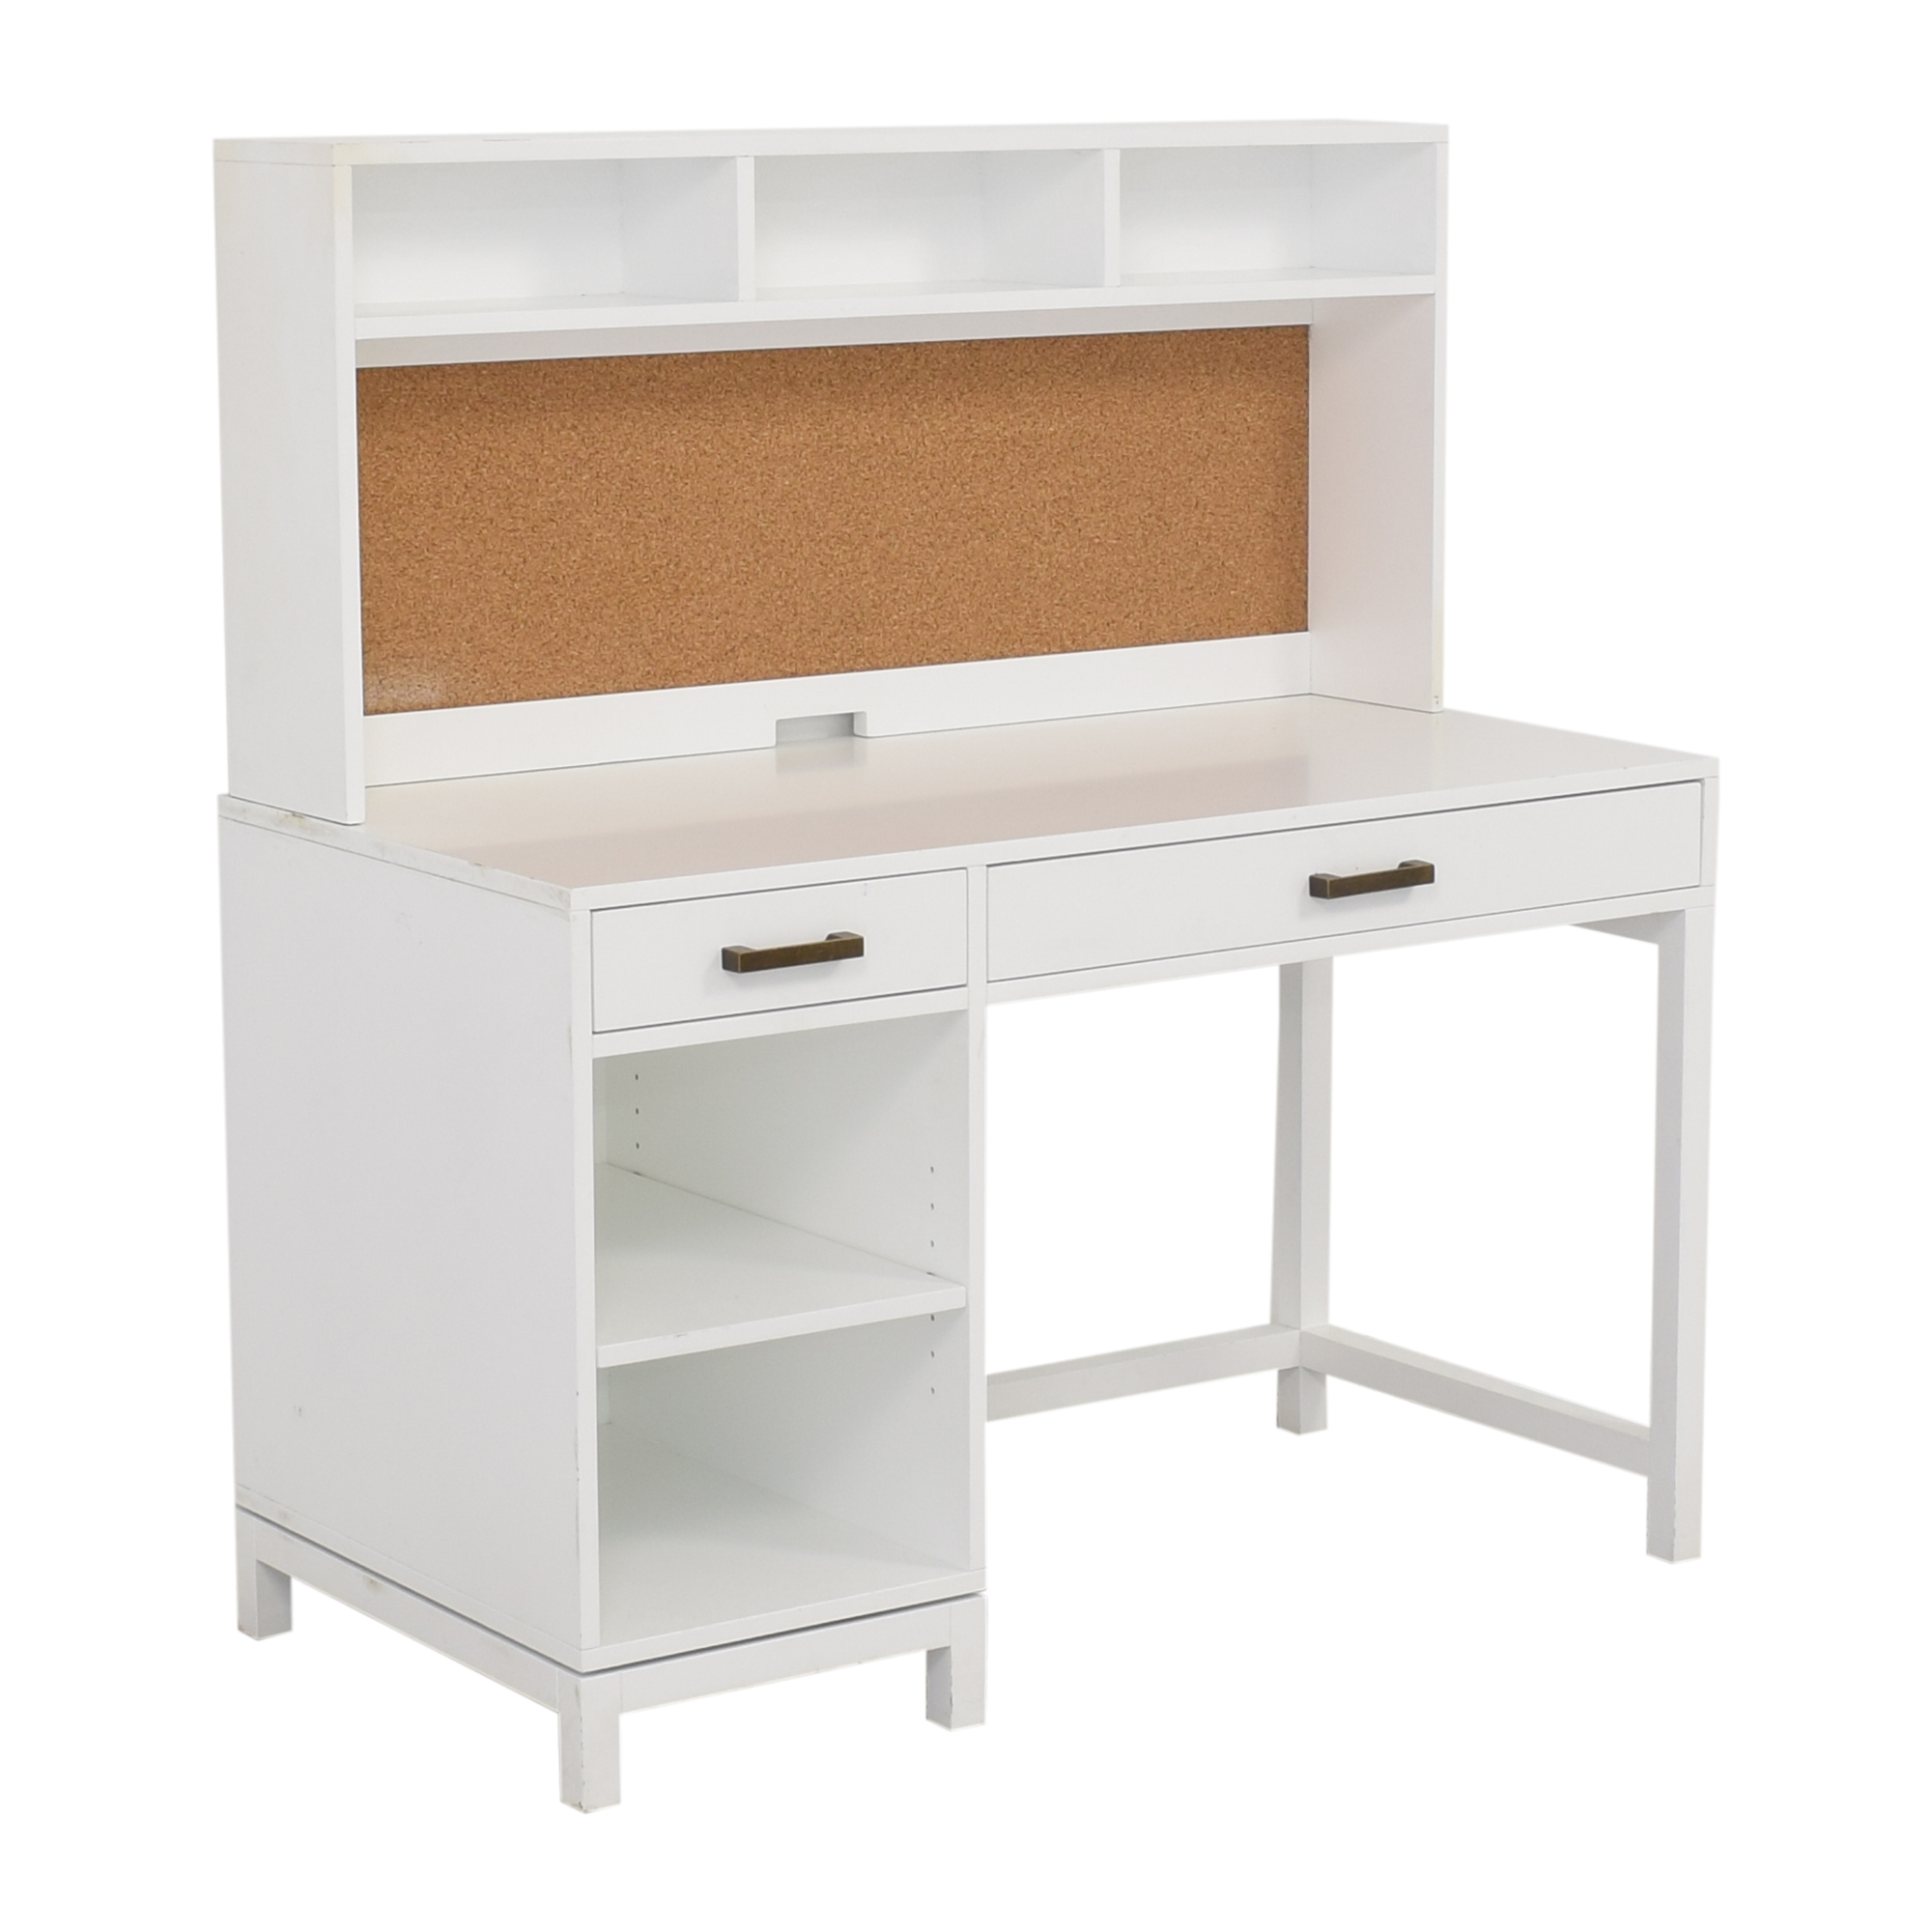 Land of Nod Land of Nod for Crate & Kids Parke Desk and Hutch Home Office Desks